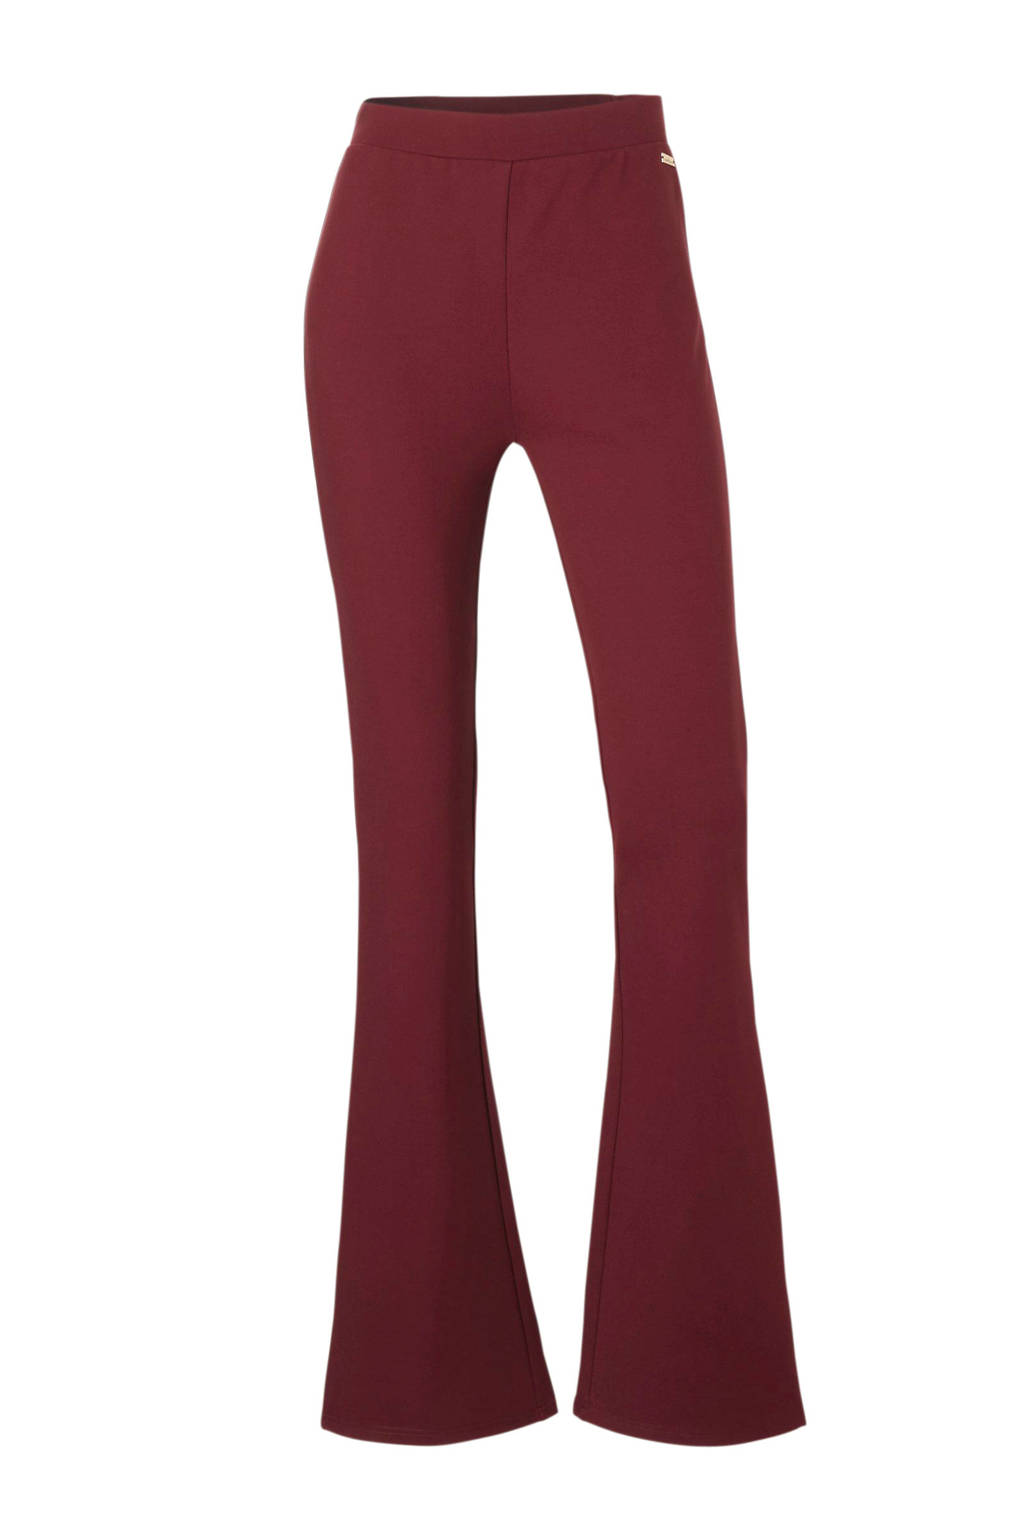 MARIA TAILOR flared fit broek rood, Rood